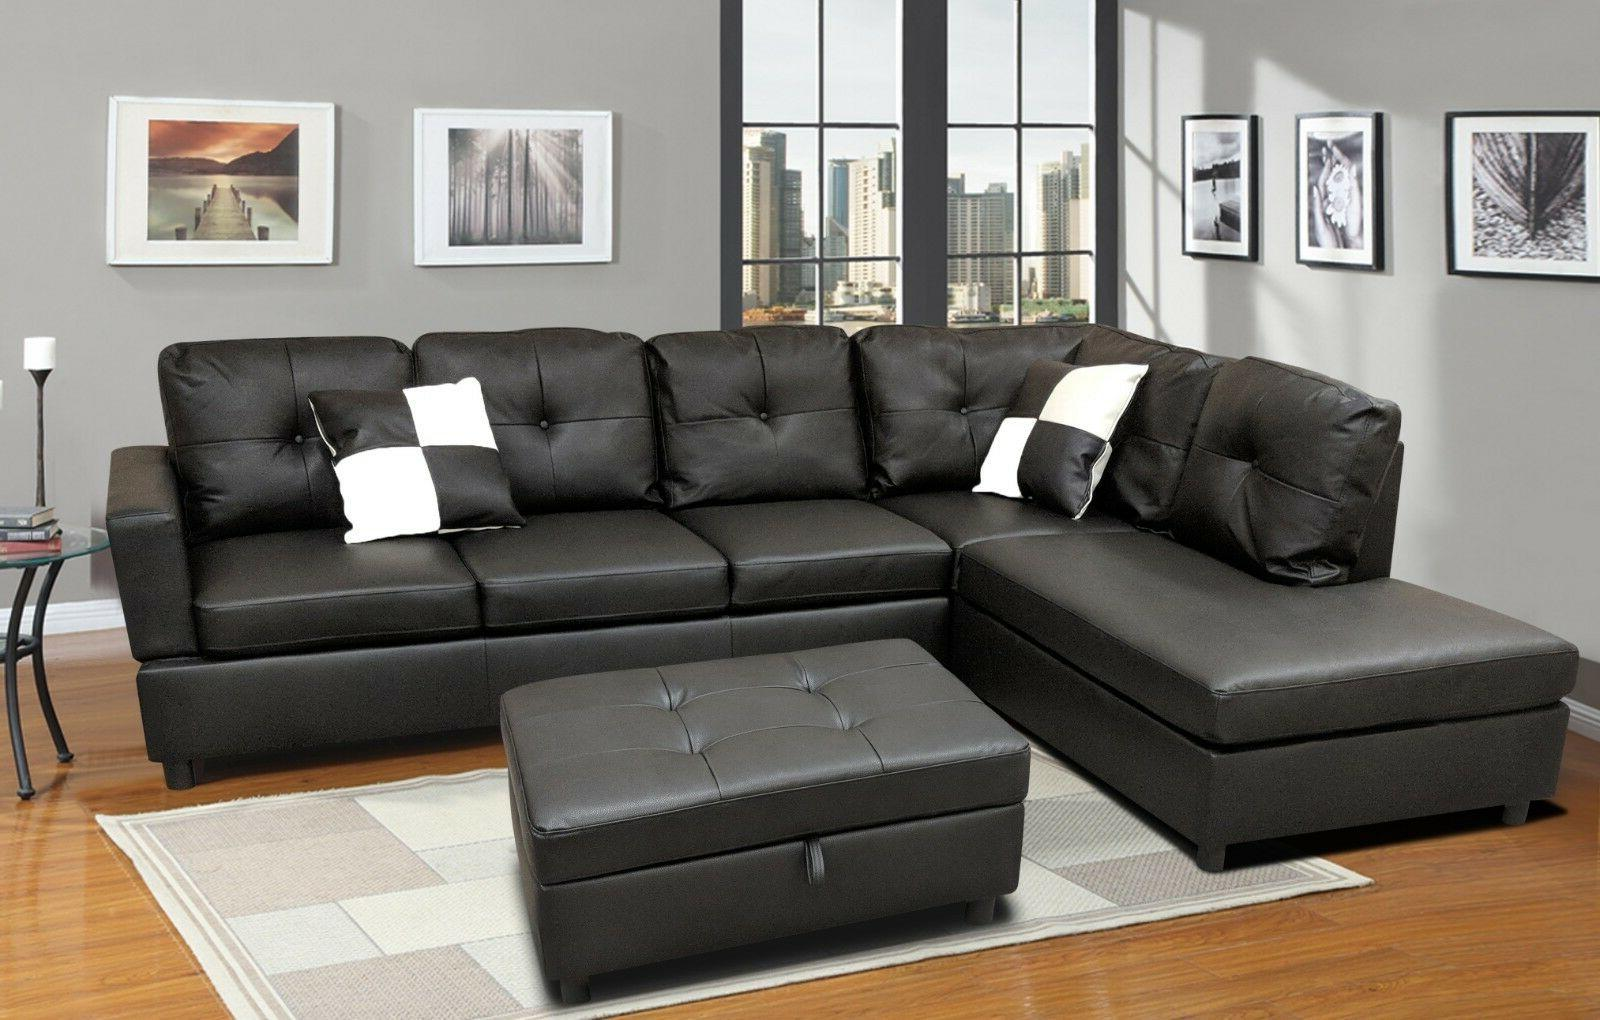 Luxury Faux Leather Living Room Sectional Sofa Set Black/Espresso | Left  Chaise